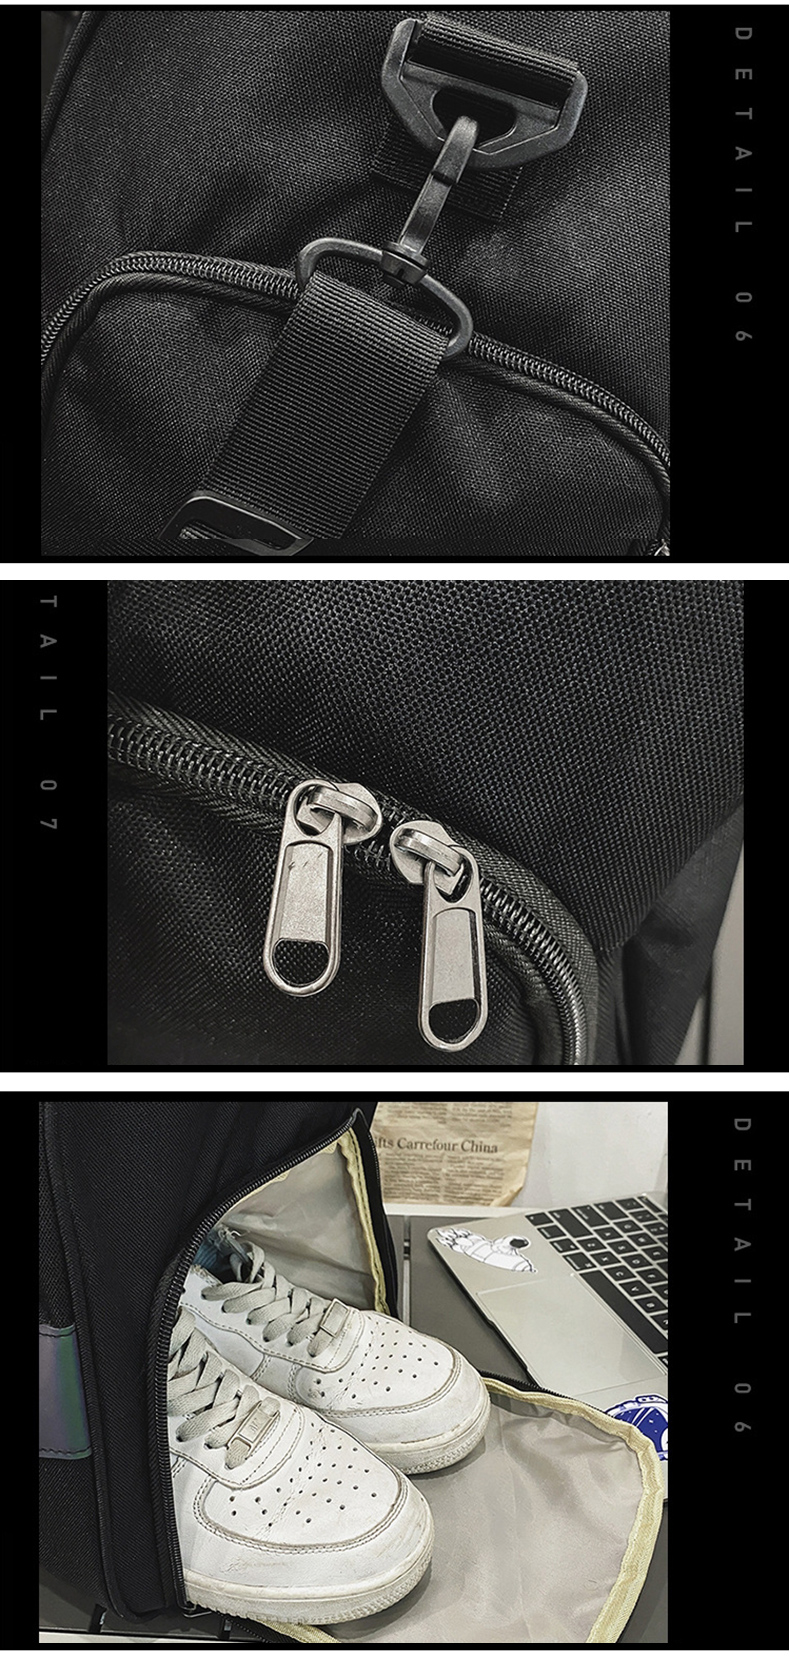 Large Capacity Travel Bag with Reflective Design